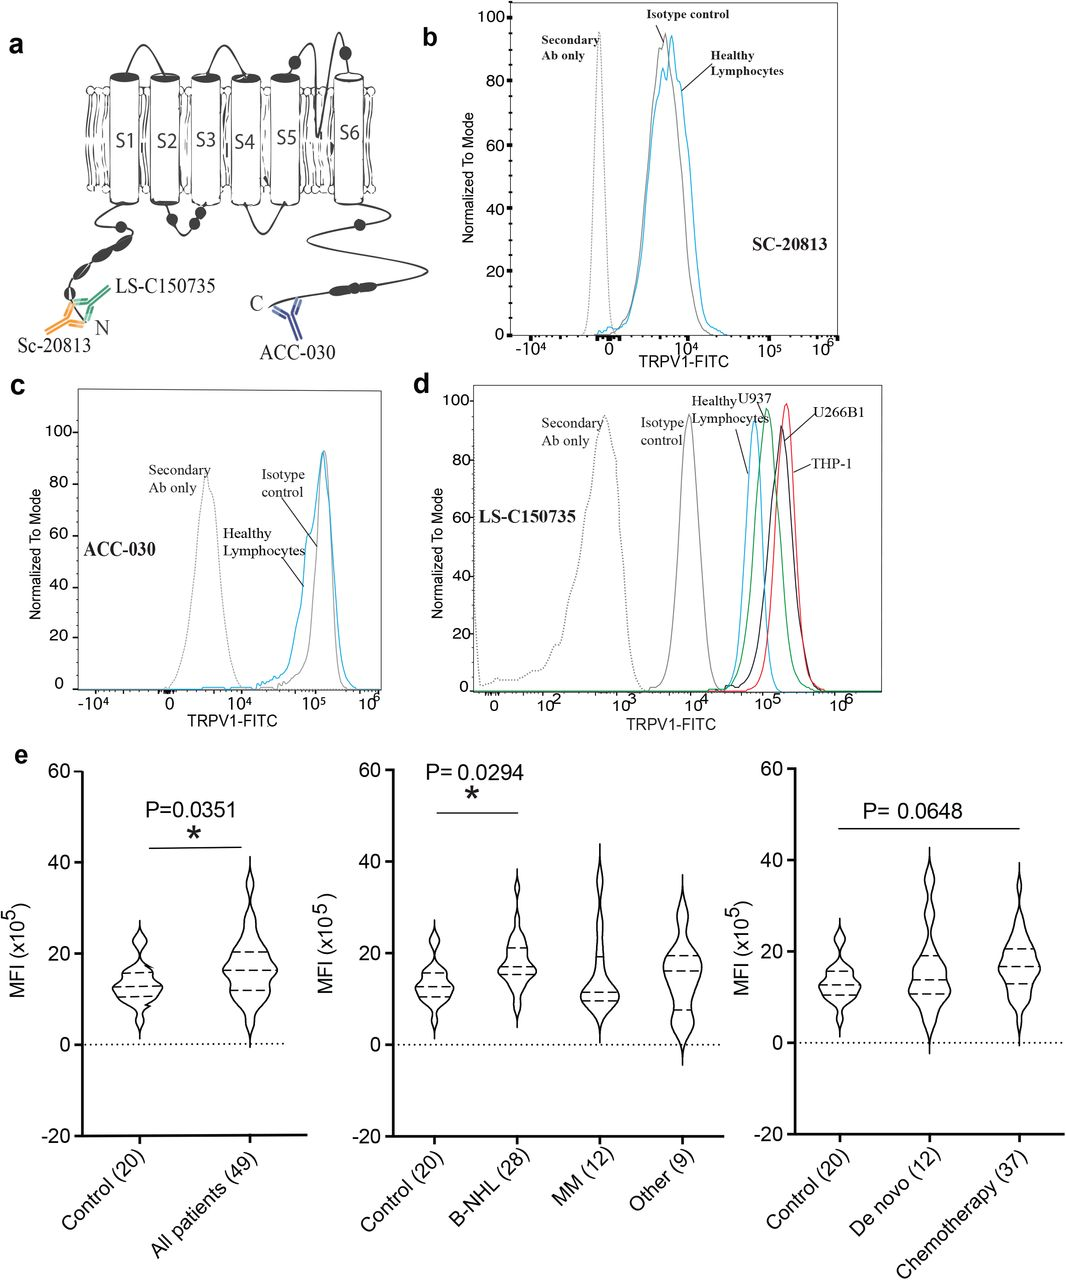 TRPV1 expression using Flow Cytometry. (A) Overview structure of TRPV1 and the 3 antibodies binding sites. Assessment of anti-TRPV1 antibodies: (B) SC-20813, (C) ACC-030, and (D) LS-C150735. Panel D demonstrates clear separation of isotype control from TRPV1 signals in THP-1, U266B1, U937 cells and healthy human lymphocytes using LS-C150735. (E) TRPV1 expression in all patients with hematological malignancies and healthy controls (n=20). TRPV1 in MM, B-NHL and other hematological malignancies group (treated and de novo ) were compared to control. Median fluorescence intensity (MFI) value for individual patients expressed using violin plots with the mean and standard deviation also shown. Patients samples were also expressed as a ratio (MFI patient: MFI control). Overall TRPV1 was significantly higher in all patients with hematological malignancies compared to healthy control (P=0.0351, unpaired t-test) with B-NHL patients having significantly higher TRPV1 compared to control (P= 0.0294, Dunnet's test)